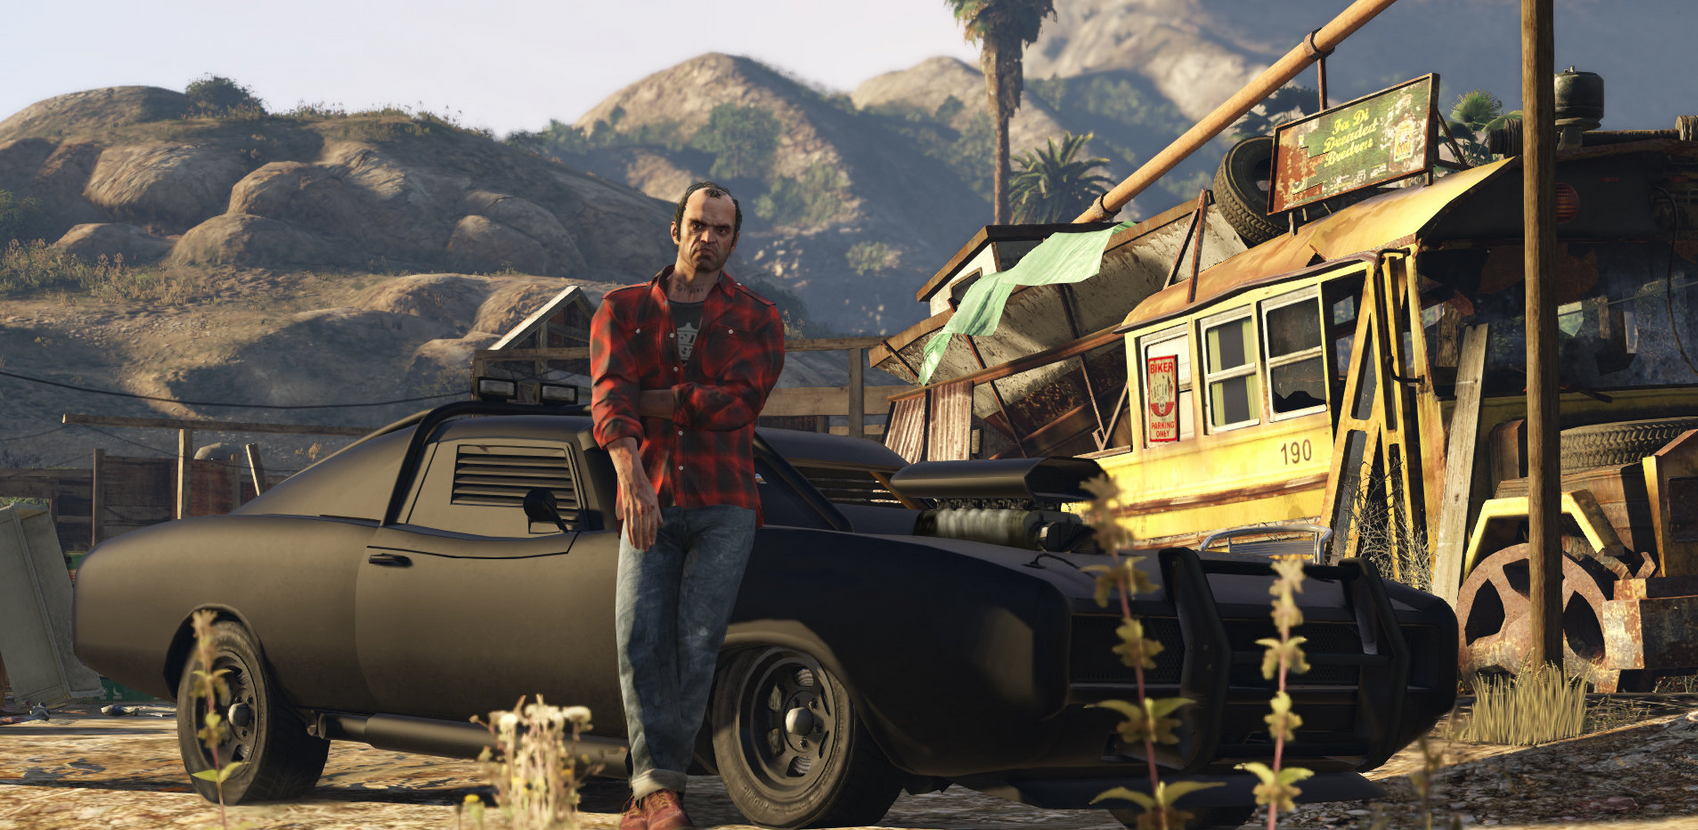 Rockstar Games For Ps4 : Rockstar games will address gta v graphics in upcoming